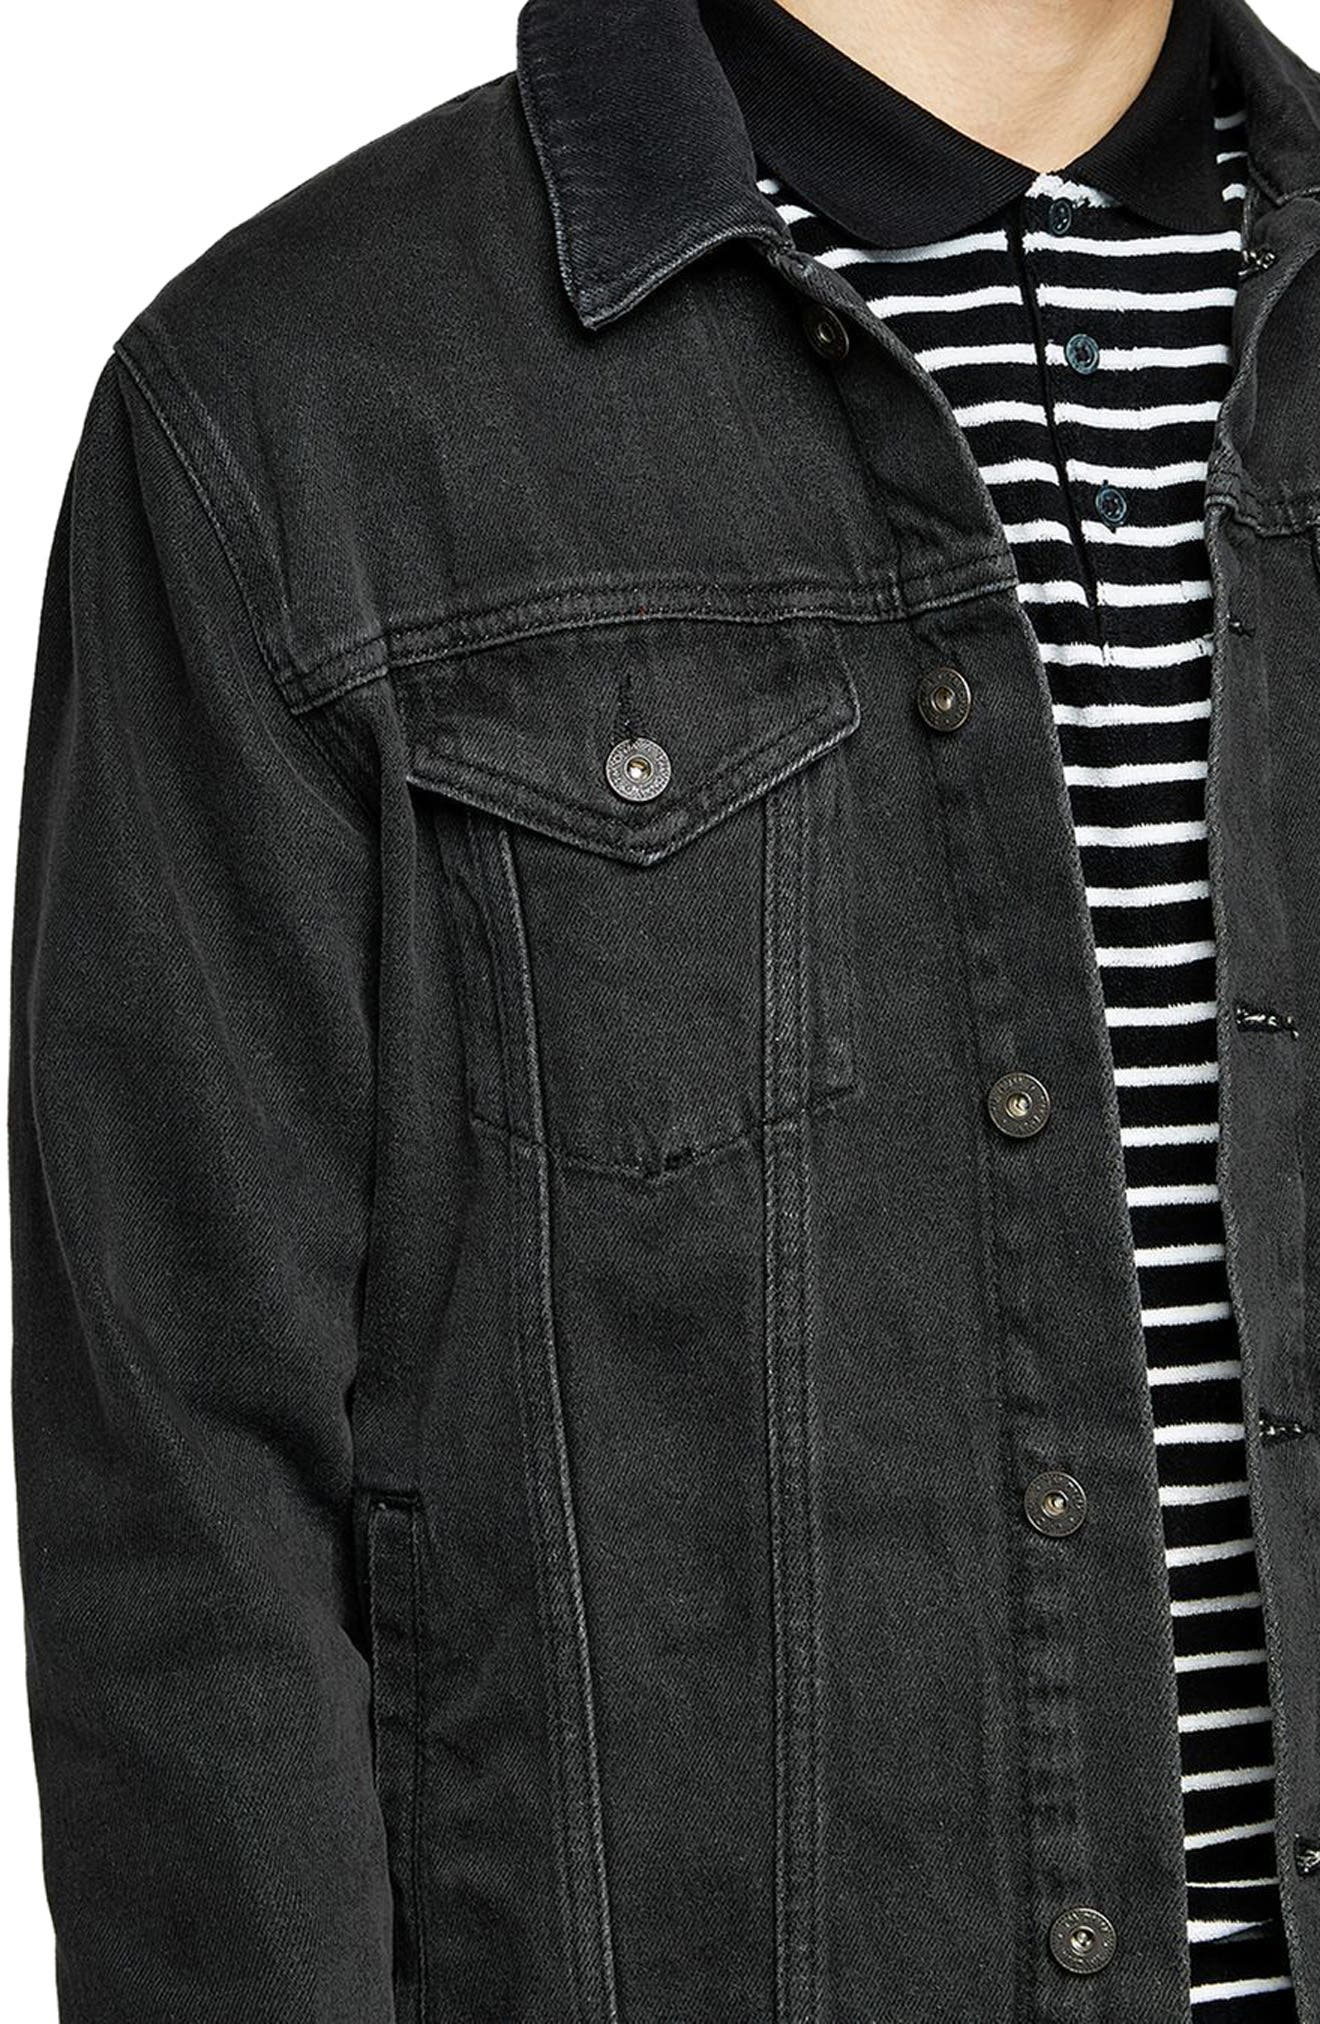 Western Denim Jacket,                             Alternate thumbnail 3, color,                             001